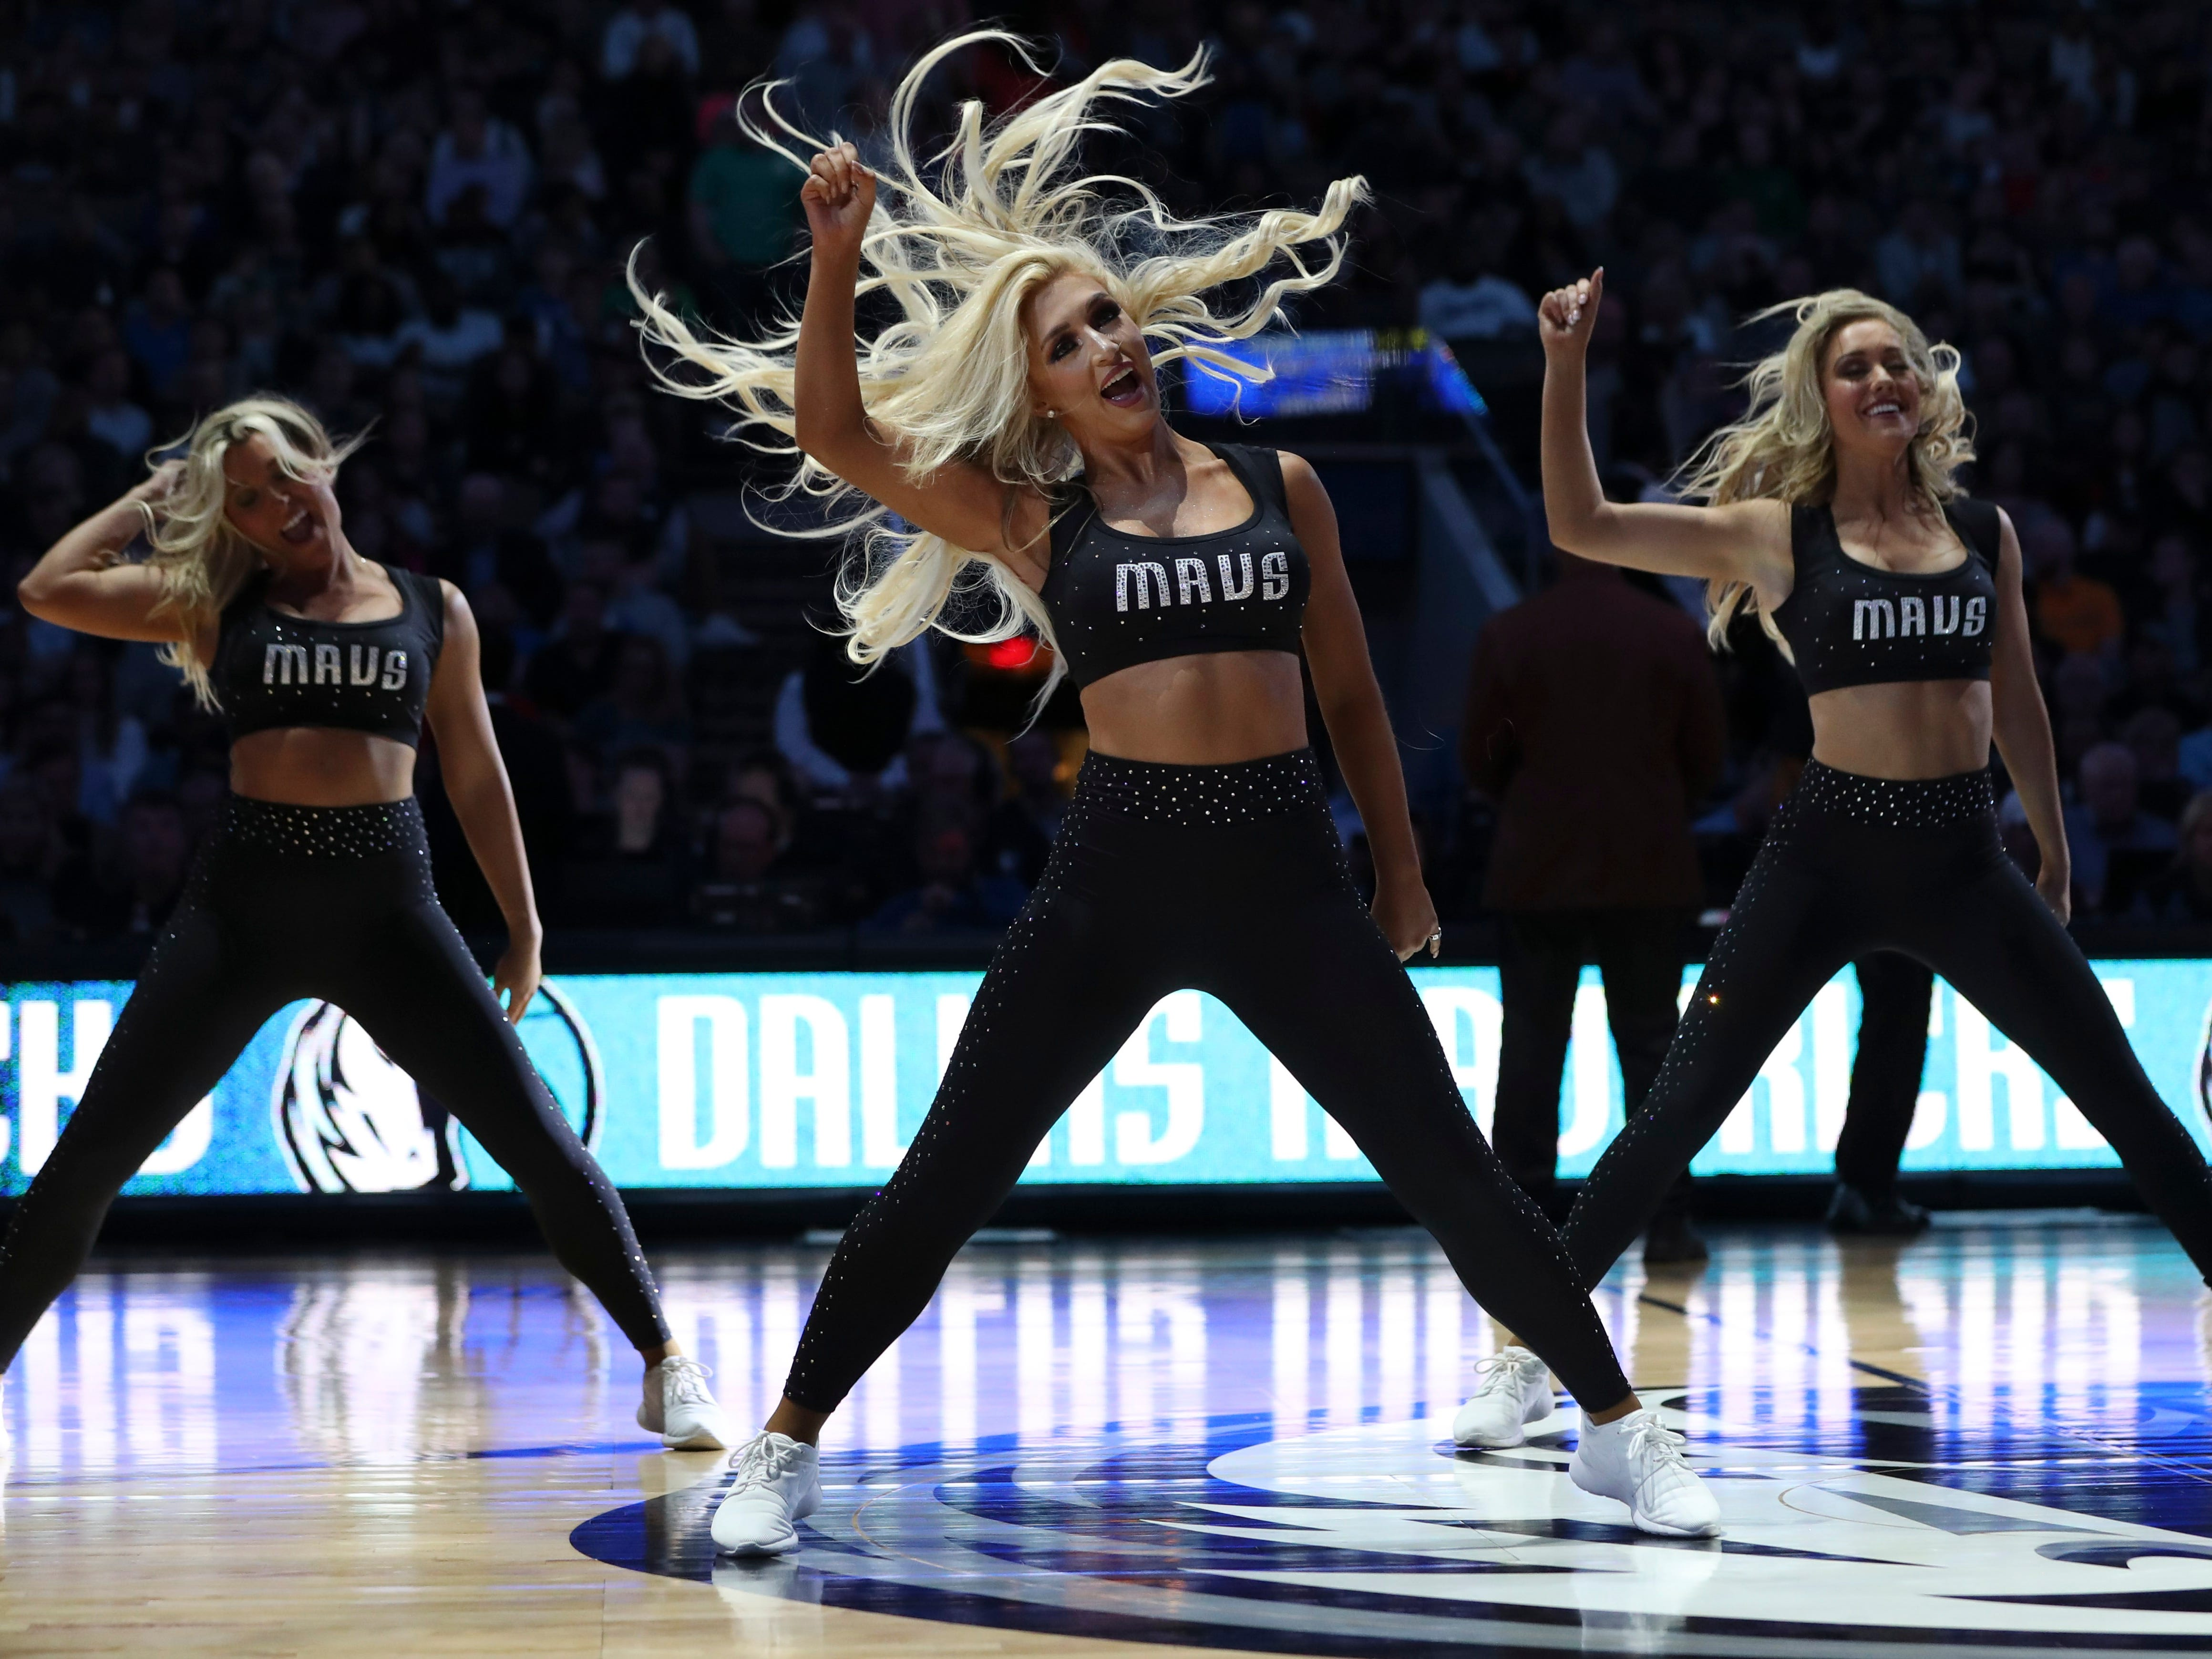 Nov. 2: Mavericks dancers perform during a game against the Knicks at American Airlines Center.